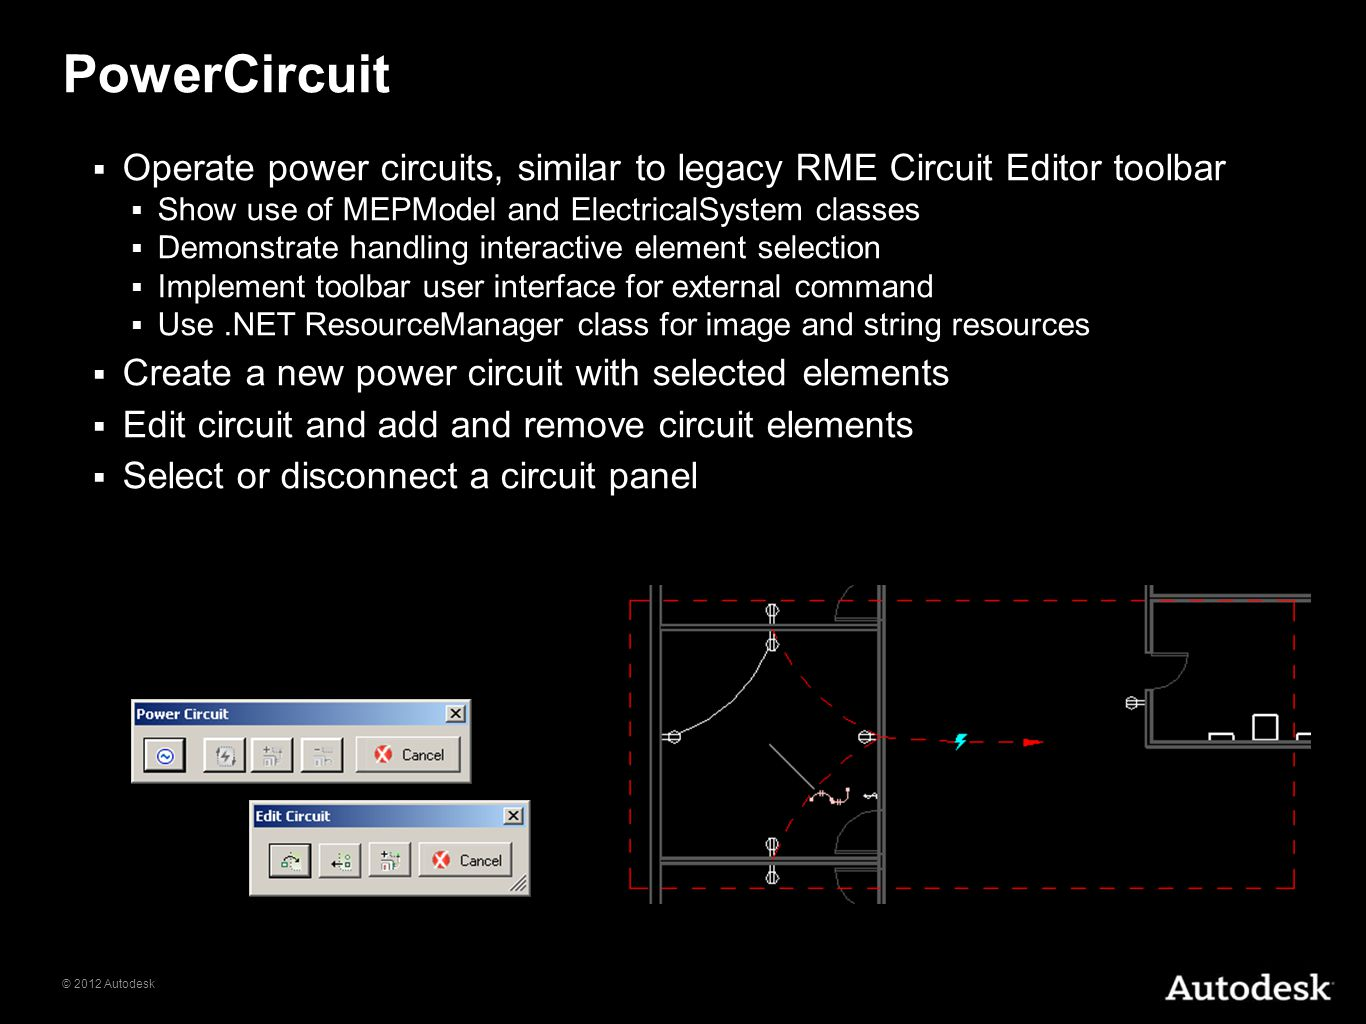 PowerCircuit Operate power circuits, similar to legacy RME Circuit Editor toolbar. Show use of MEPModel and ElectricalSystem classes.